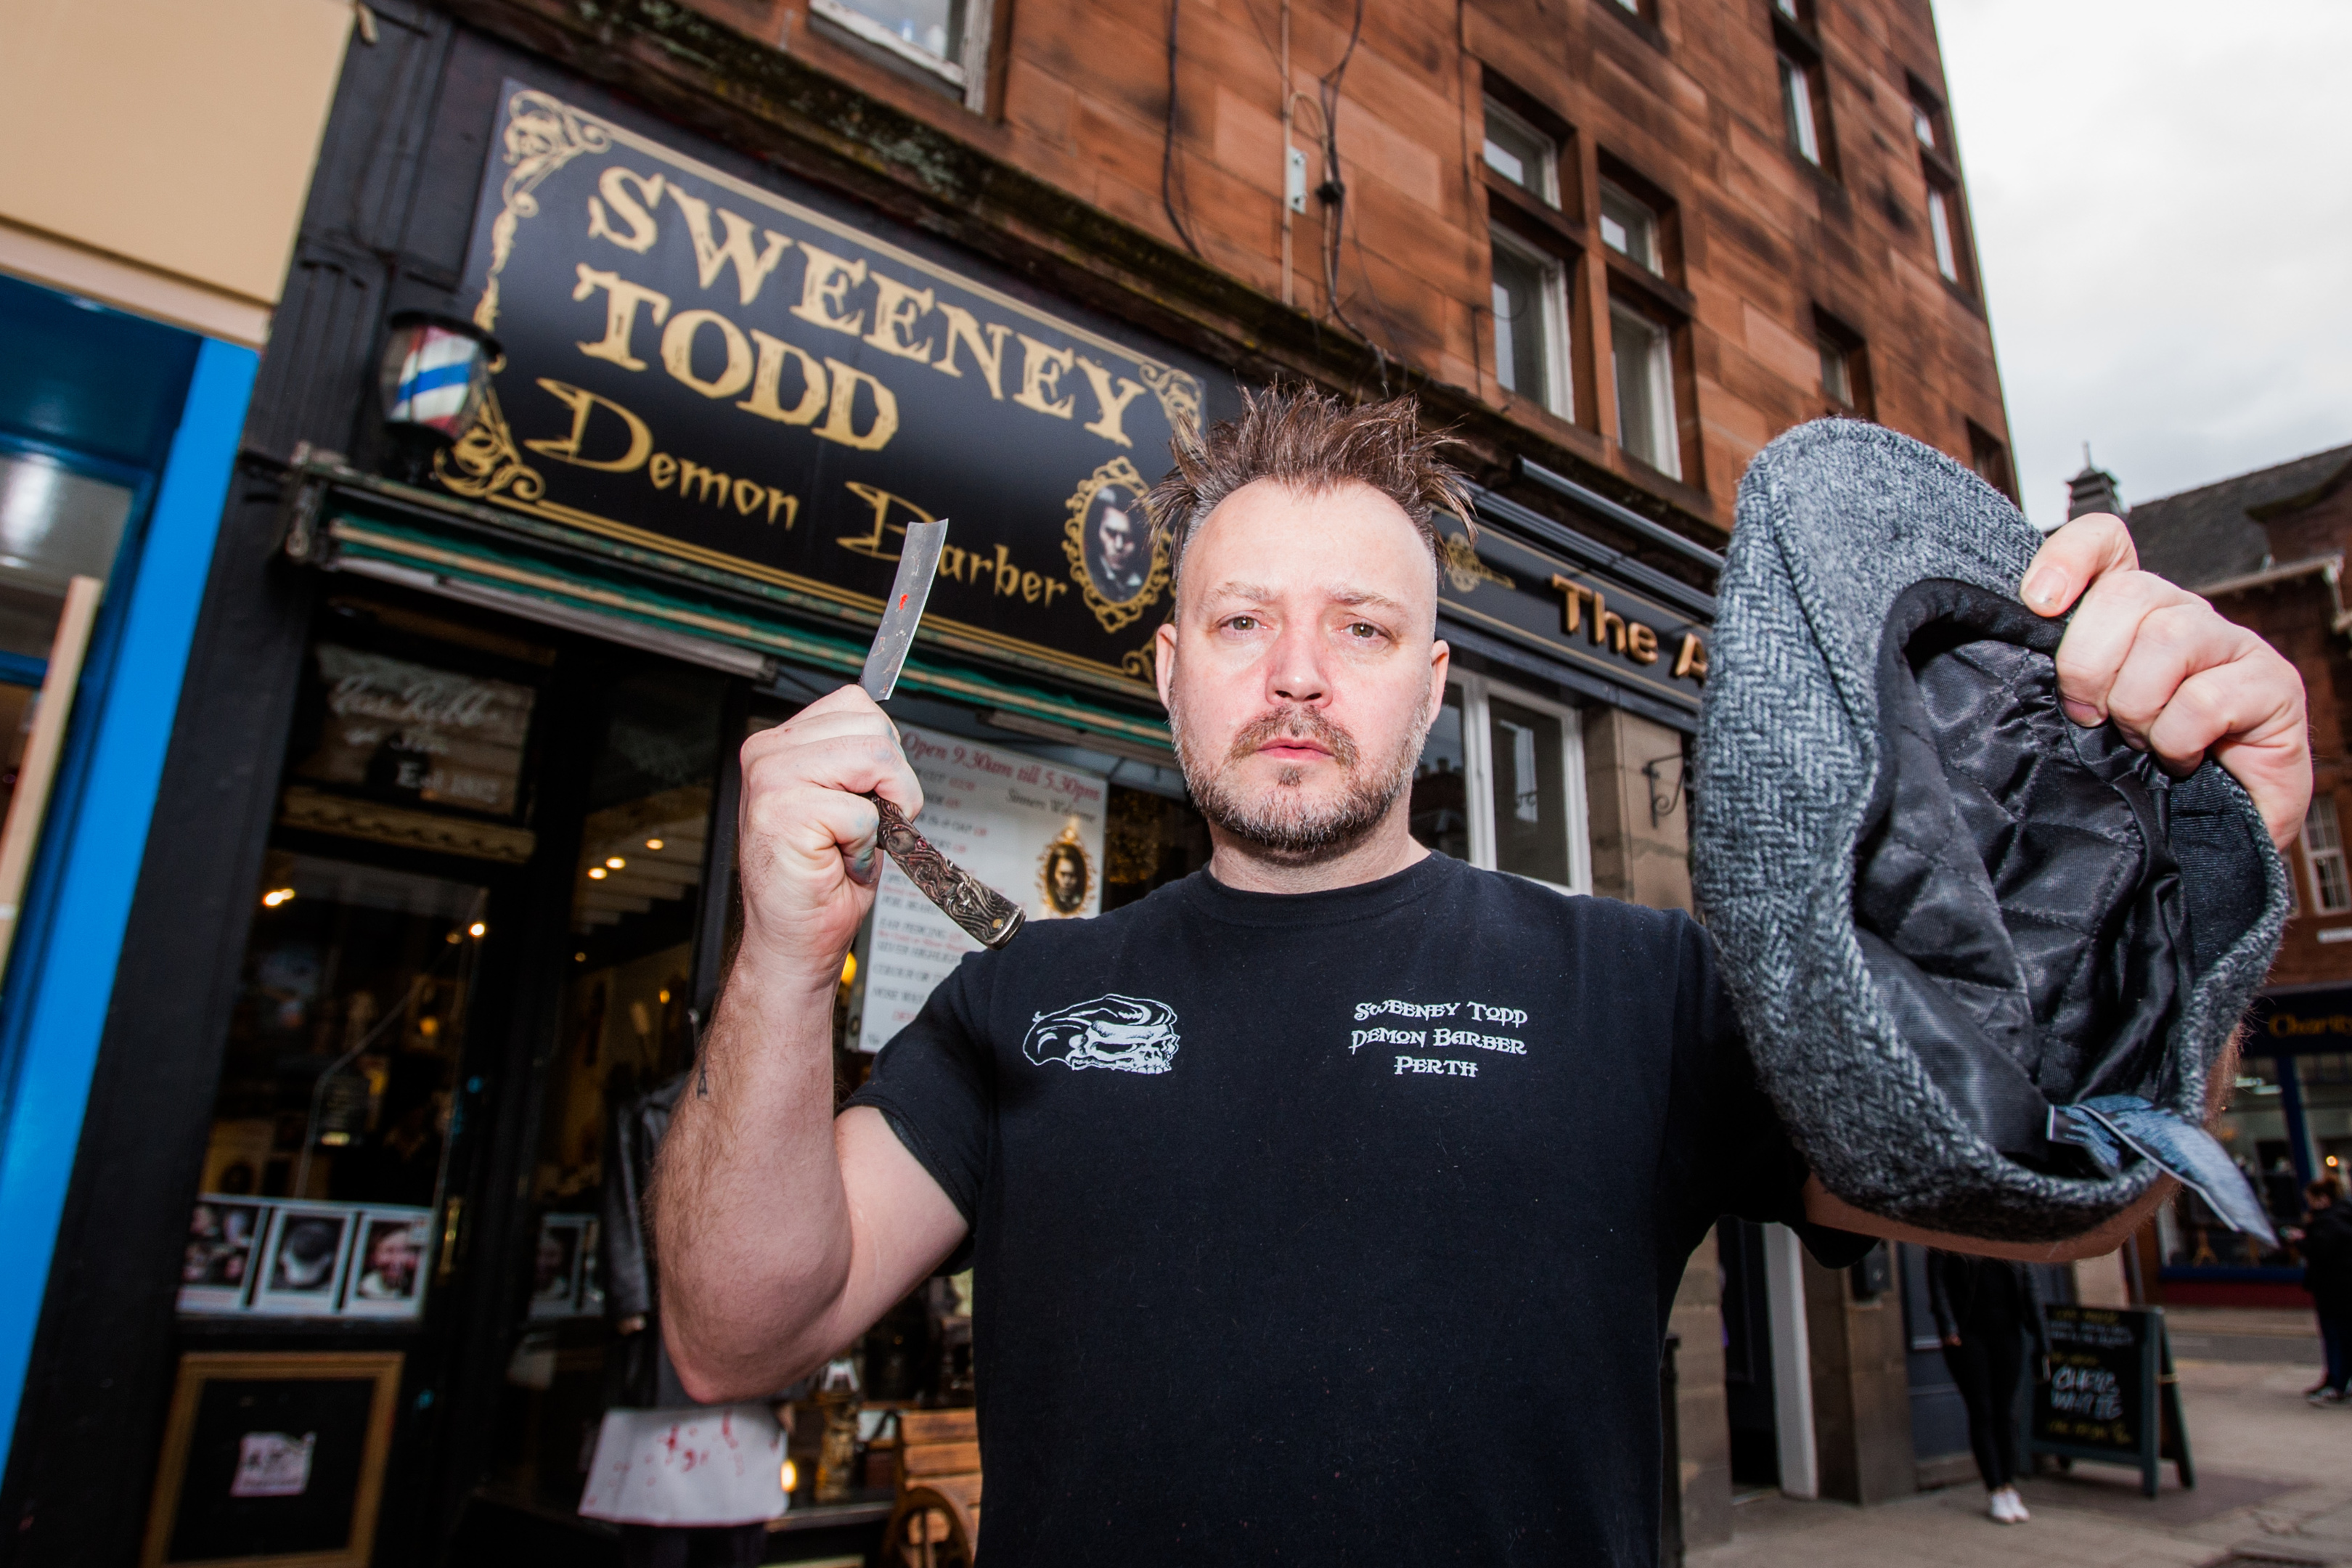 Will Robertson outside his Sweeney Todd Barbers.